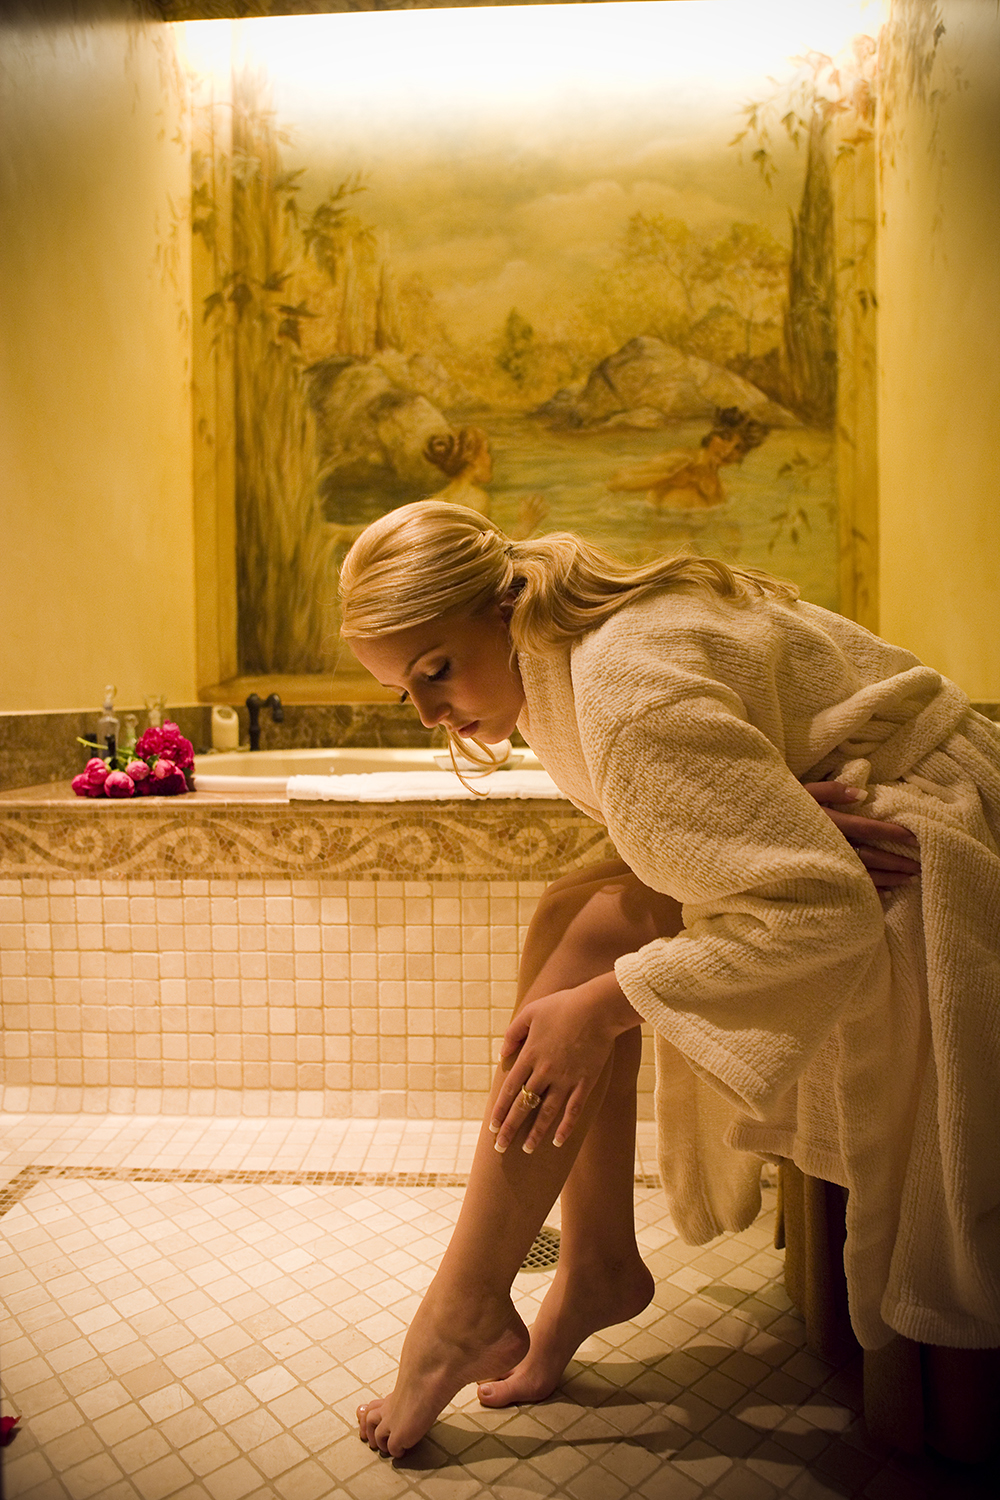 Kelly's Spa employs natural products, unique treatments and specialized programs to enhance wellness.